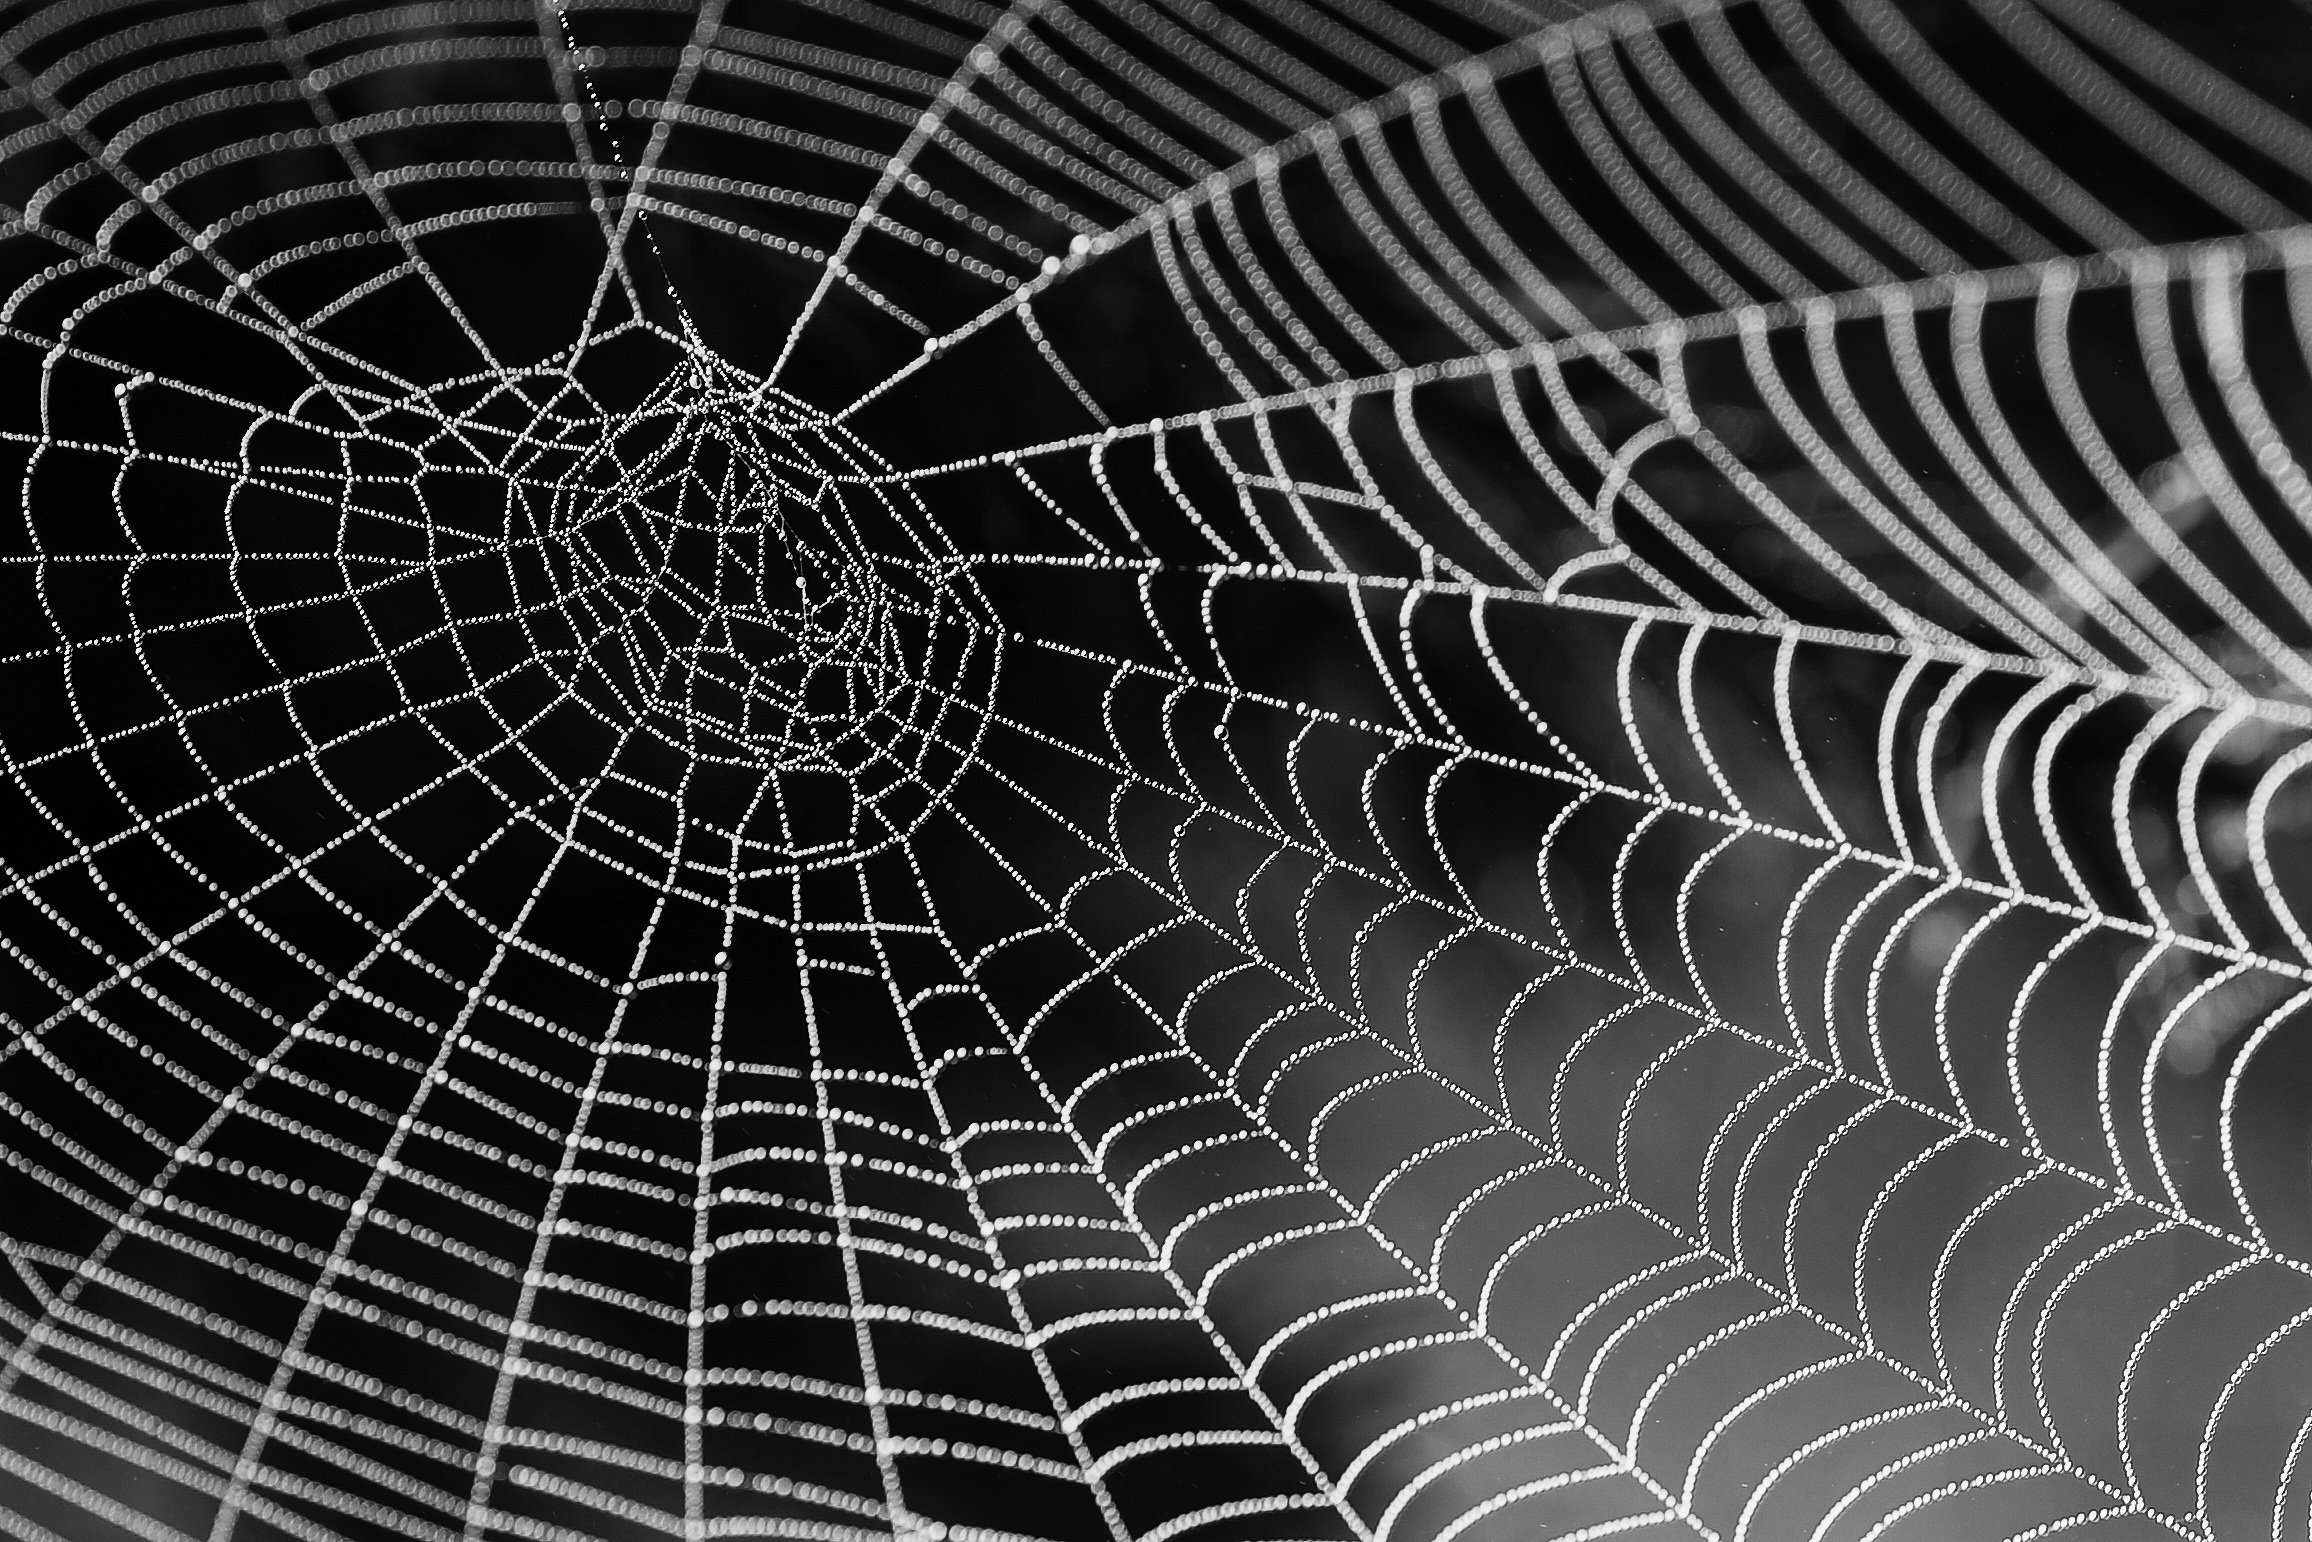 1000 Engaging Spider Web Photos Pexels Free Stock Photos